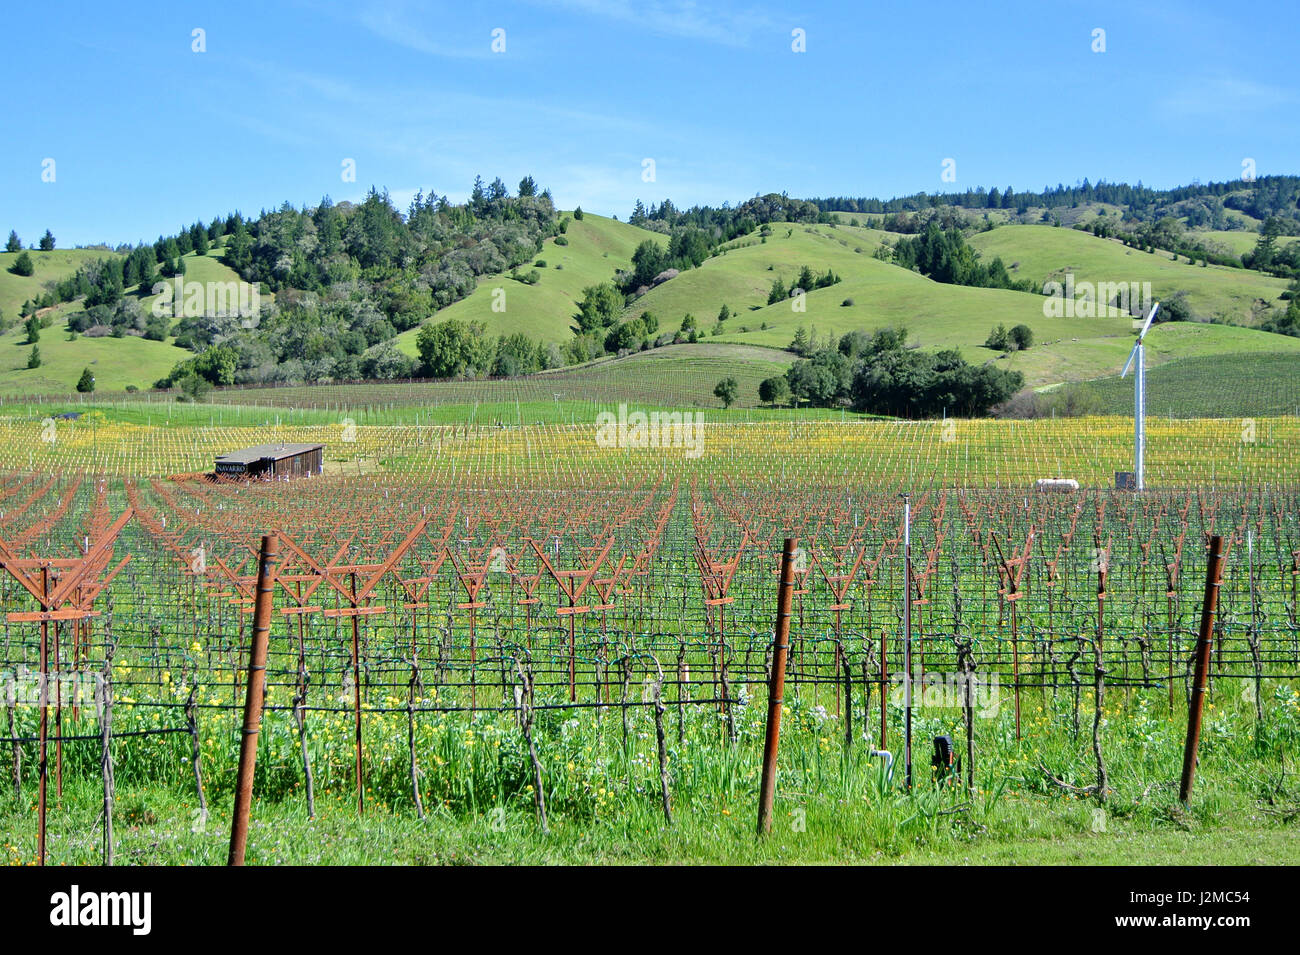 anderson valley vineyard - Stock Image